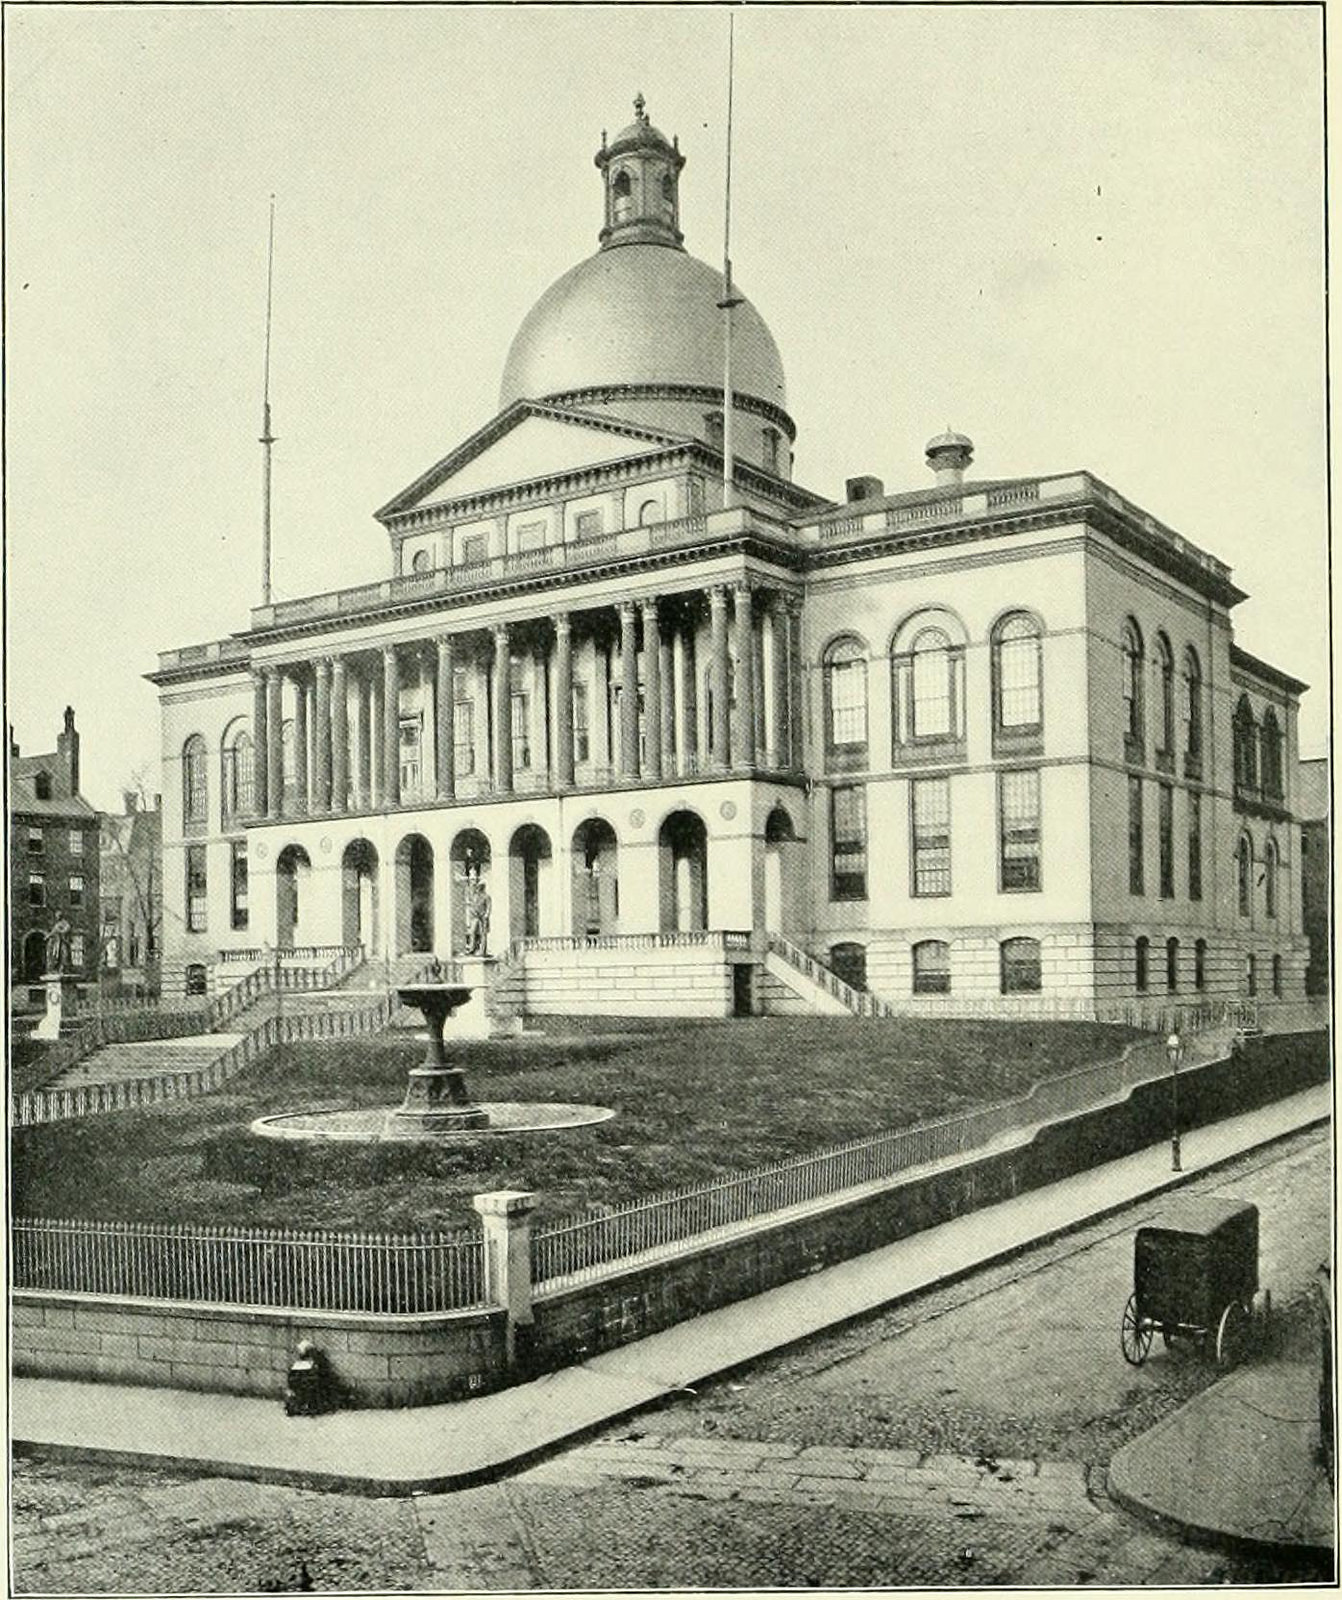 14765589801_bd6fe0e731_h---mass state house flickr--archive-org